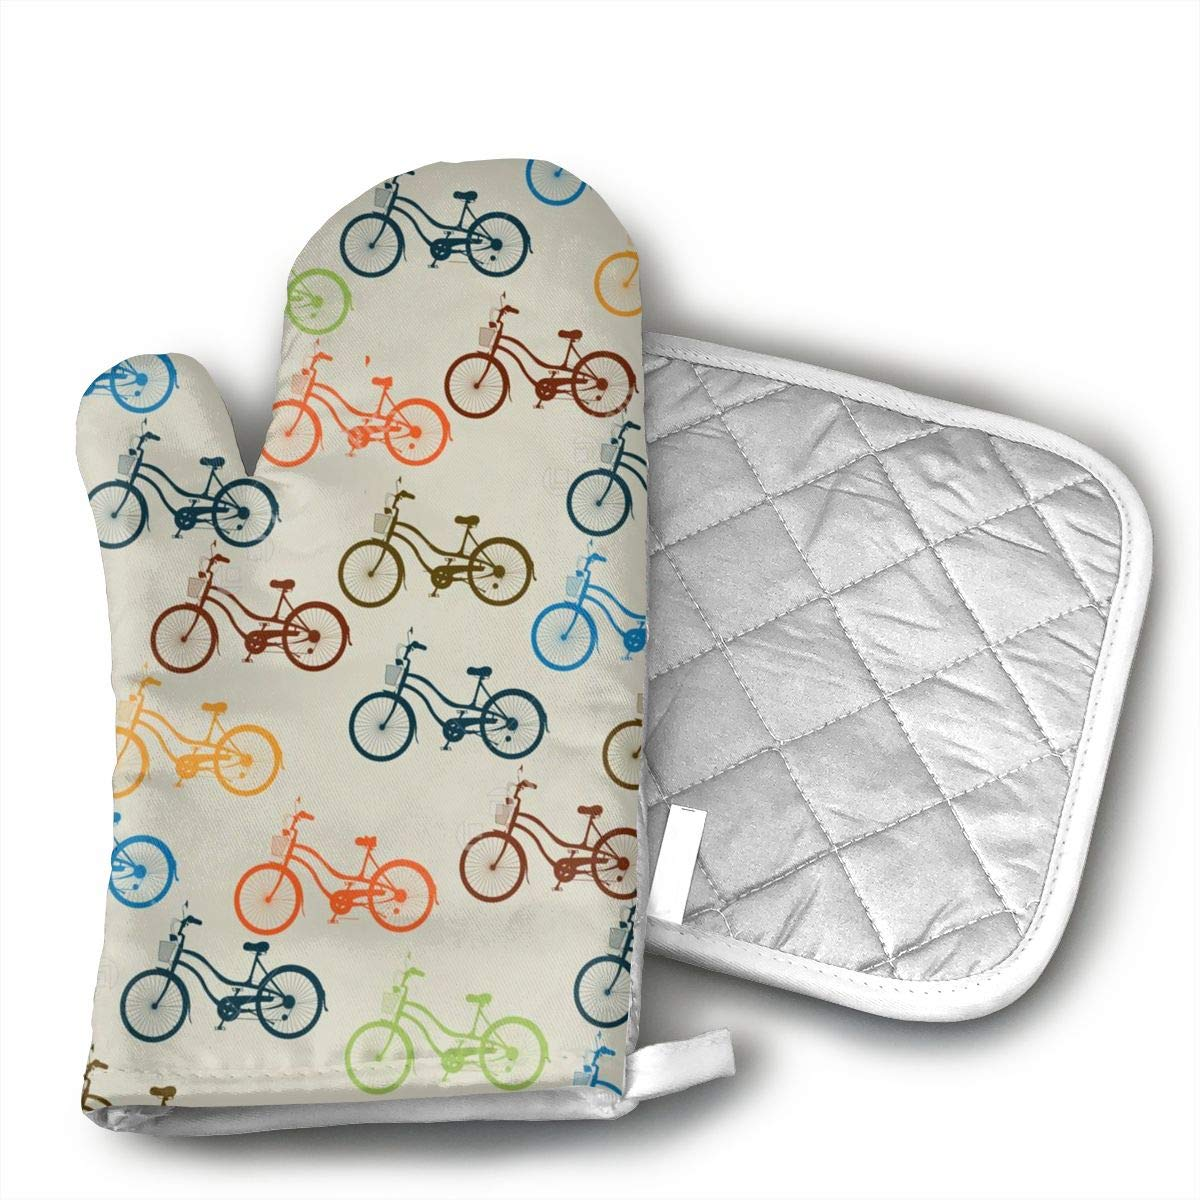 Wiqo9 Color Bicycle Oven Mitts and Pot Holders Kitchen Mitten Cooking Gloves,Cooking, Baking, BBQ.